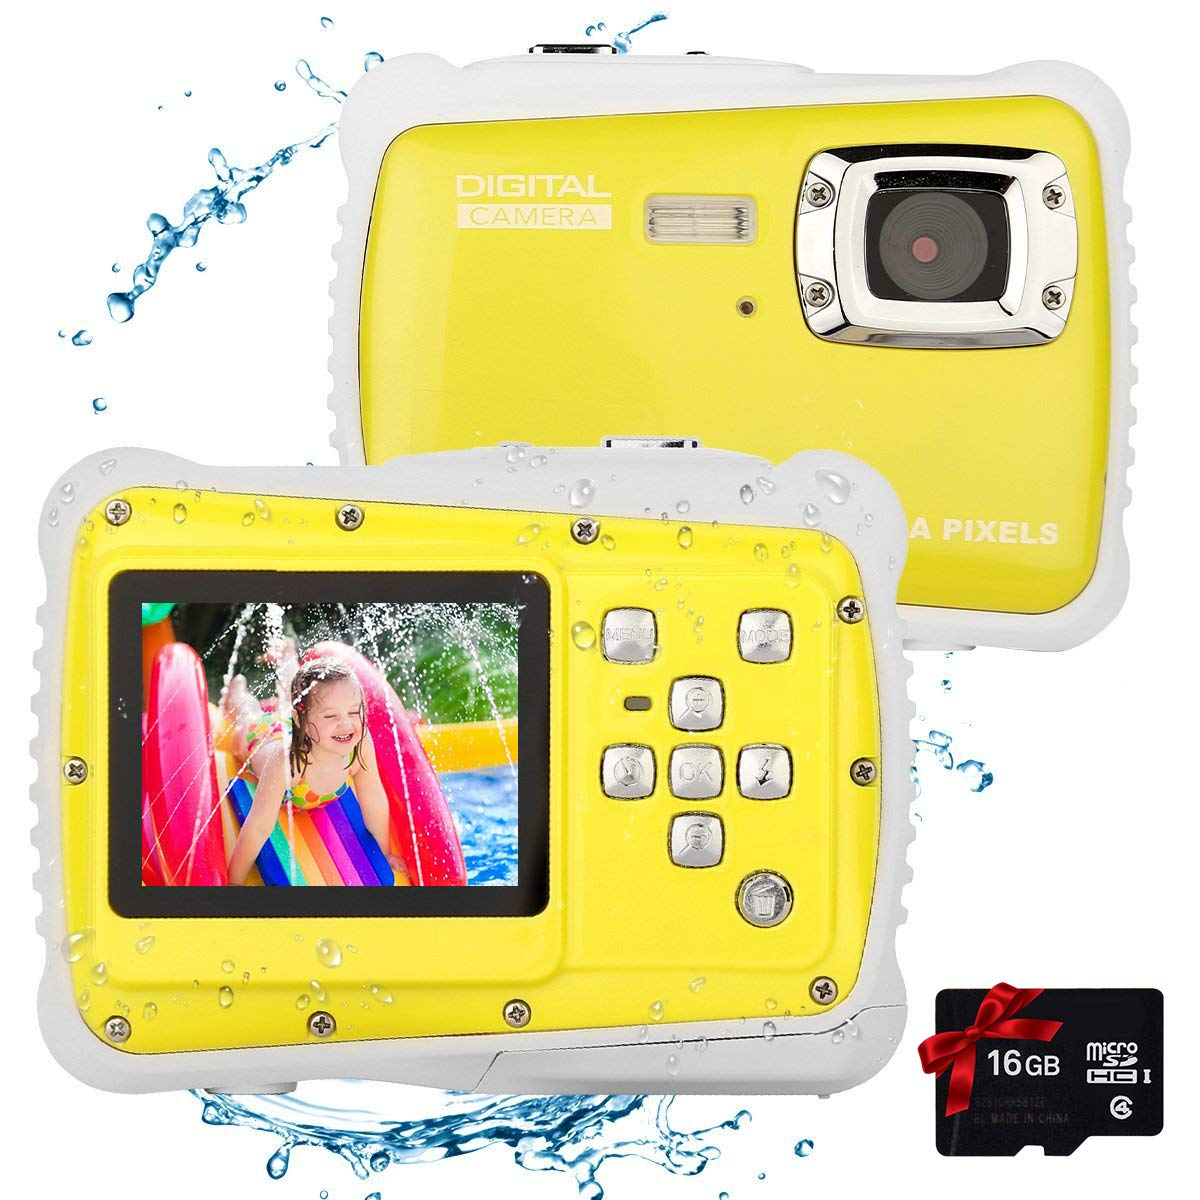 Kids Waterproof Camera Digital Camera for 4-10 Years Old Children, 12MP HD Underwater Action Camera Camcorder with 8X Digital Zoom, 2.0 Inch LCD Display, 16G Micro SD Card – Easy to Use (Orange) tesha